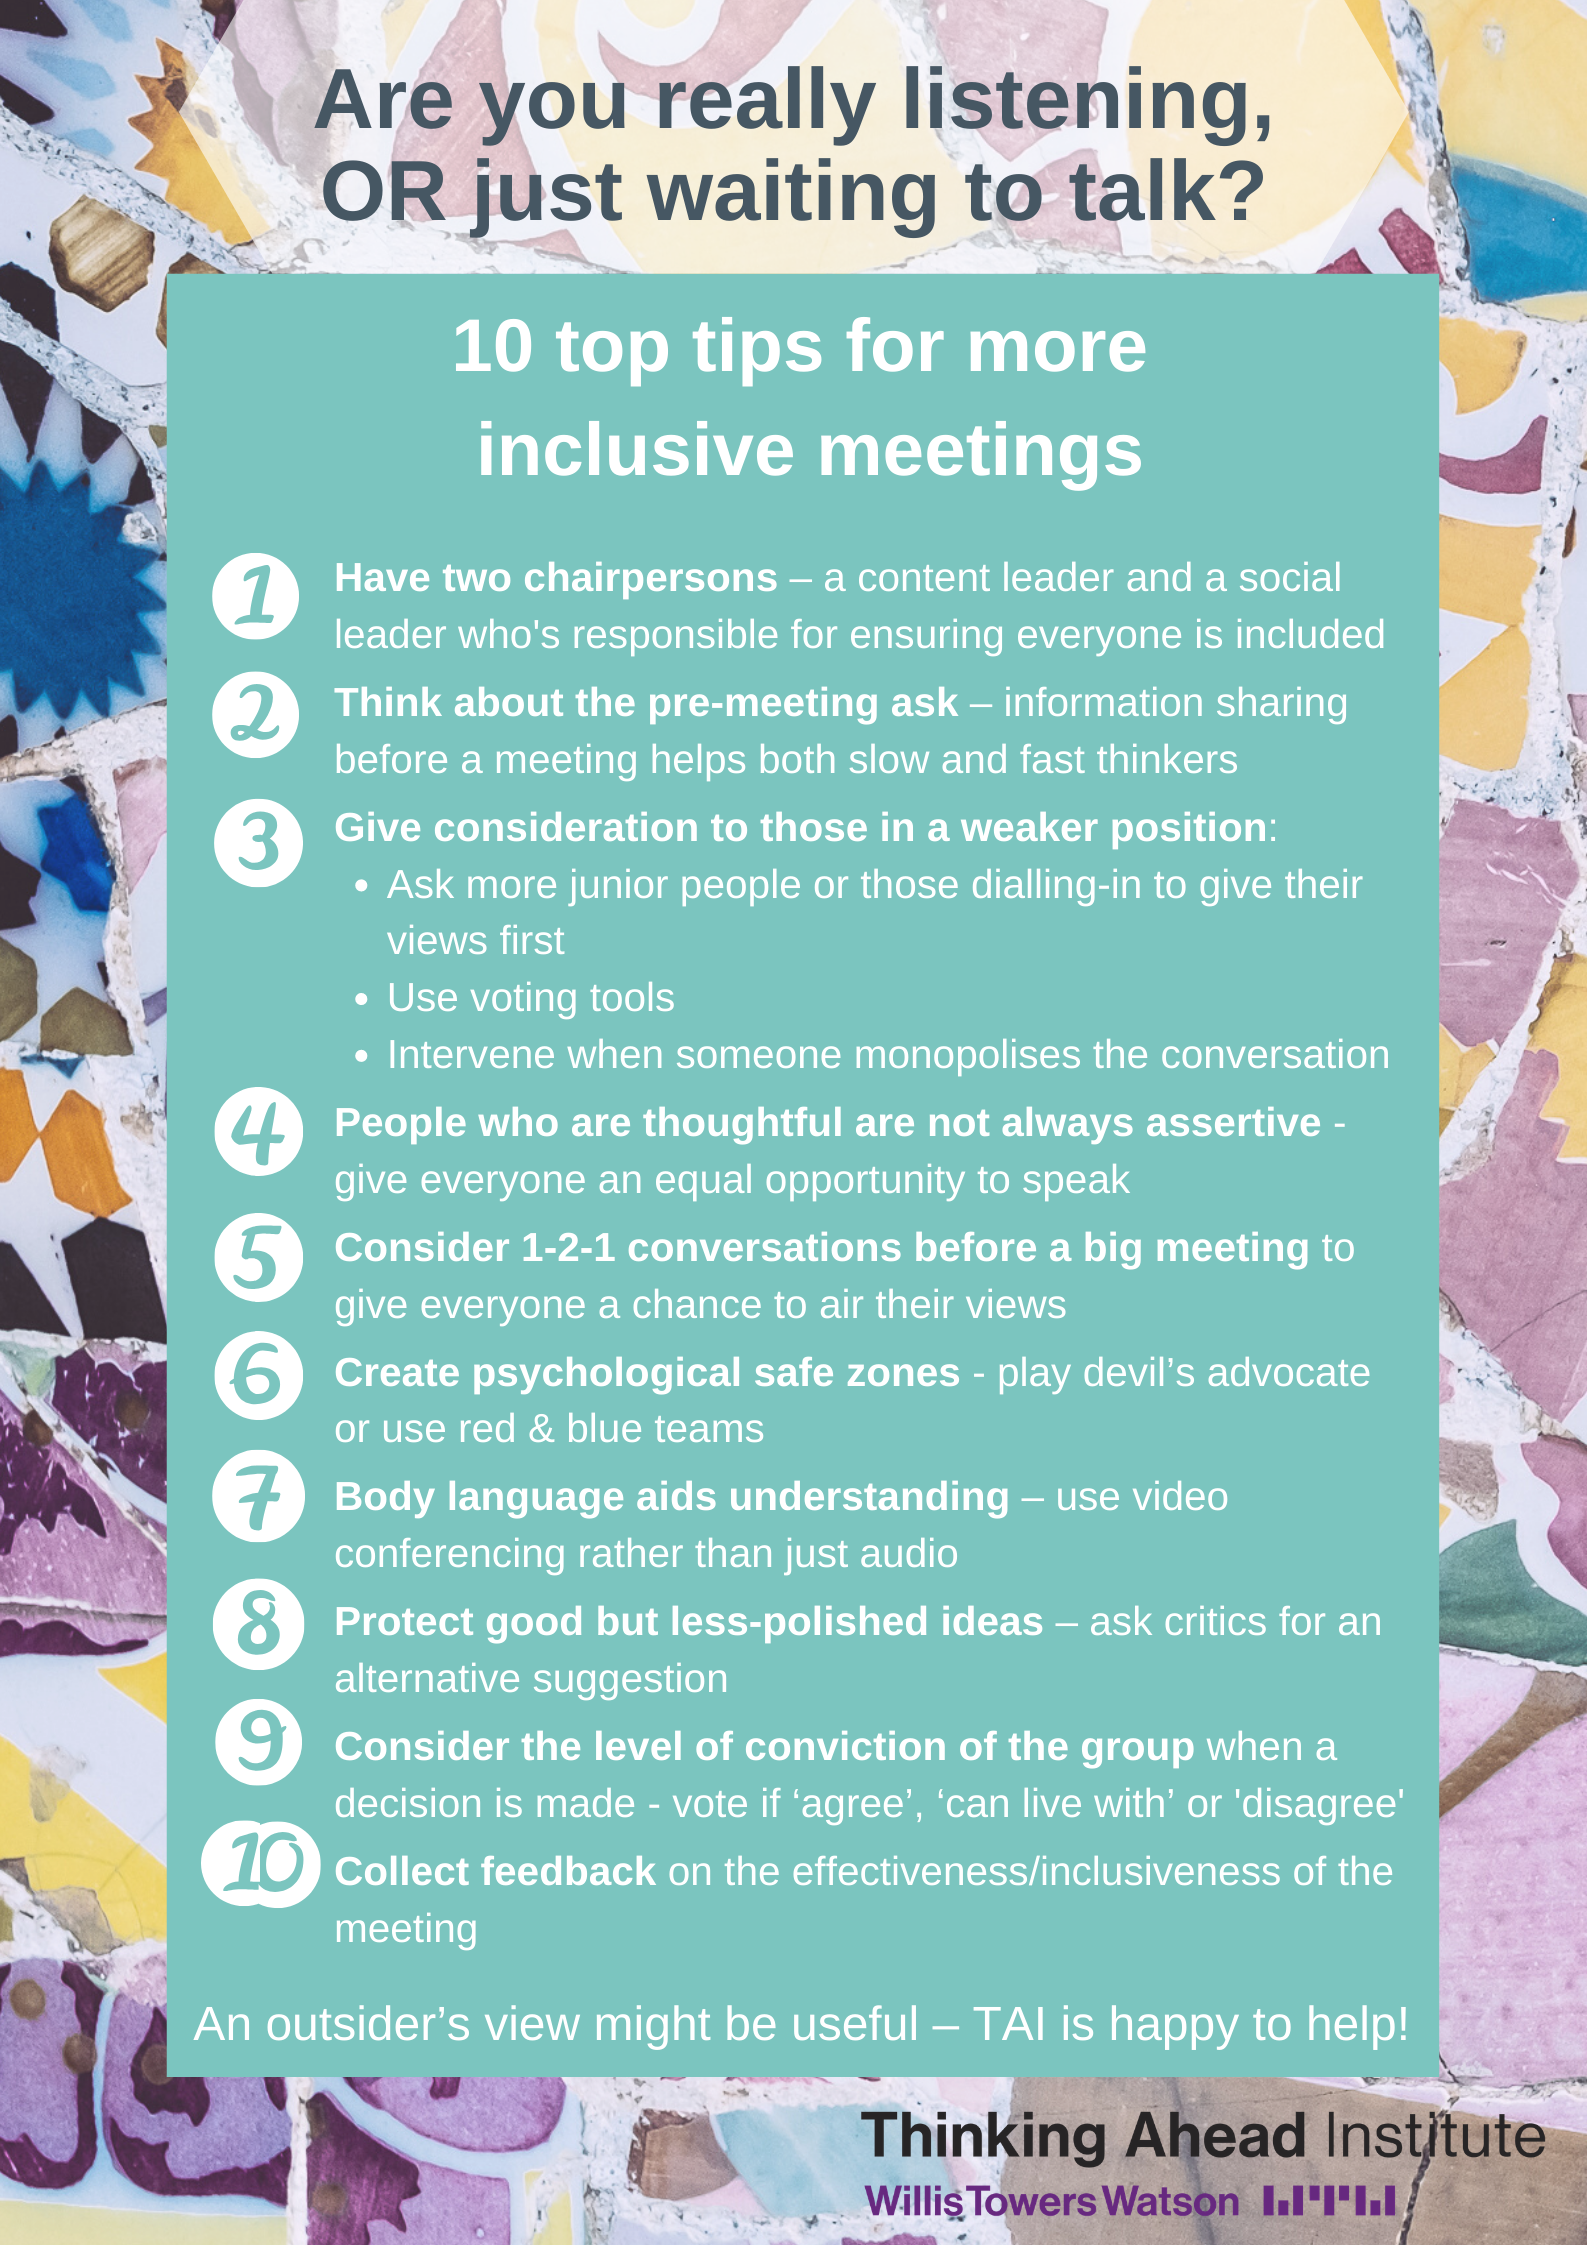 10 tips for more inclusive meetings